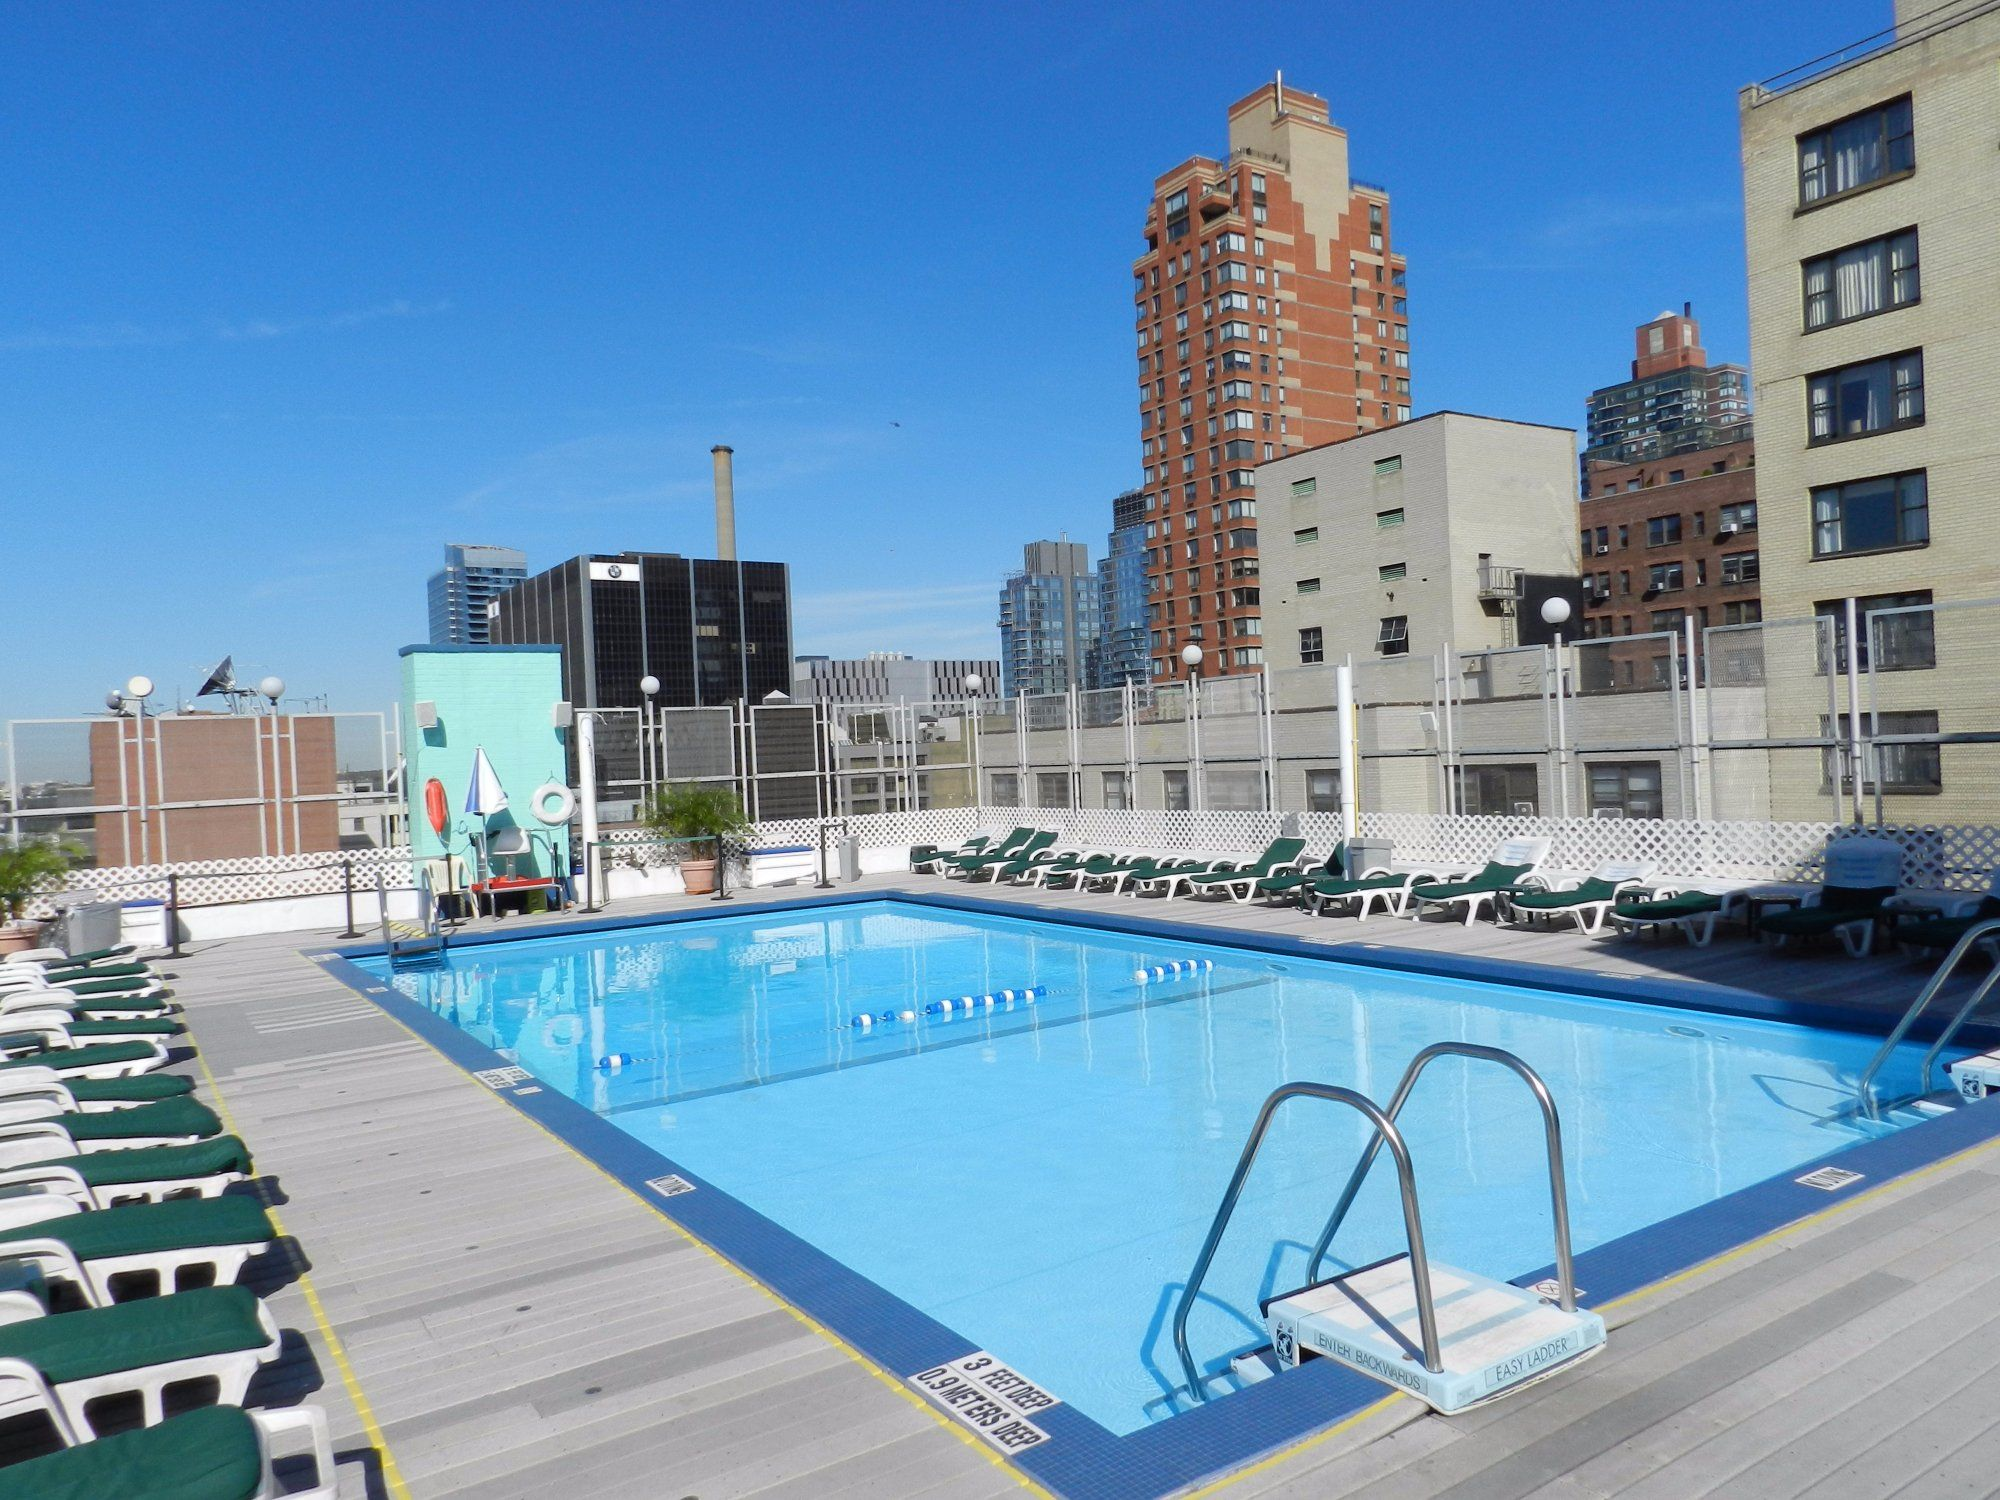 Book the watson hotel new york city on tripadvisor see - New york hotels with swimming pools ...